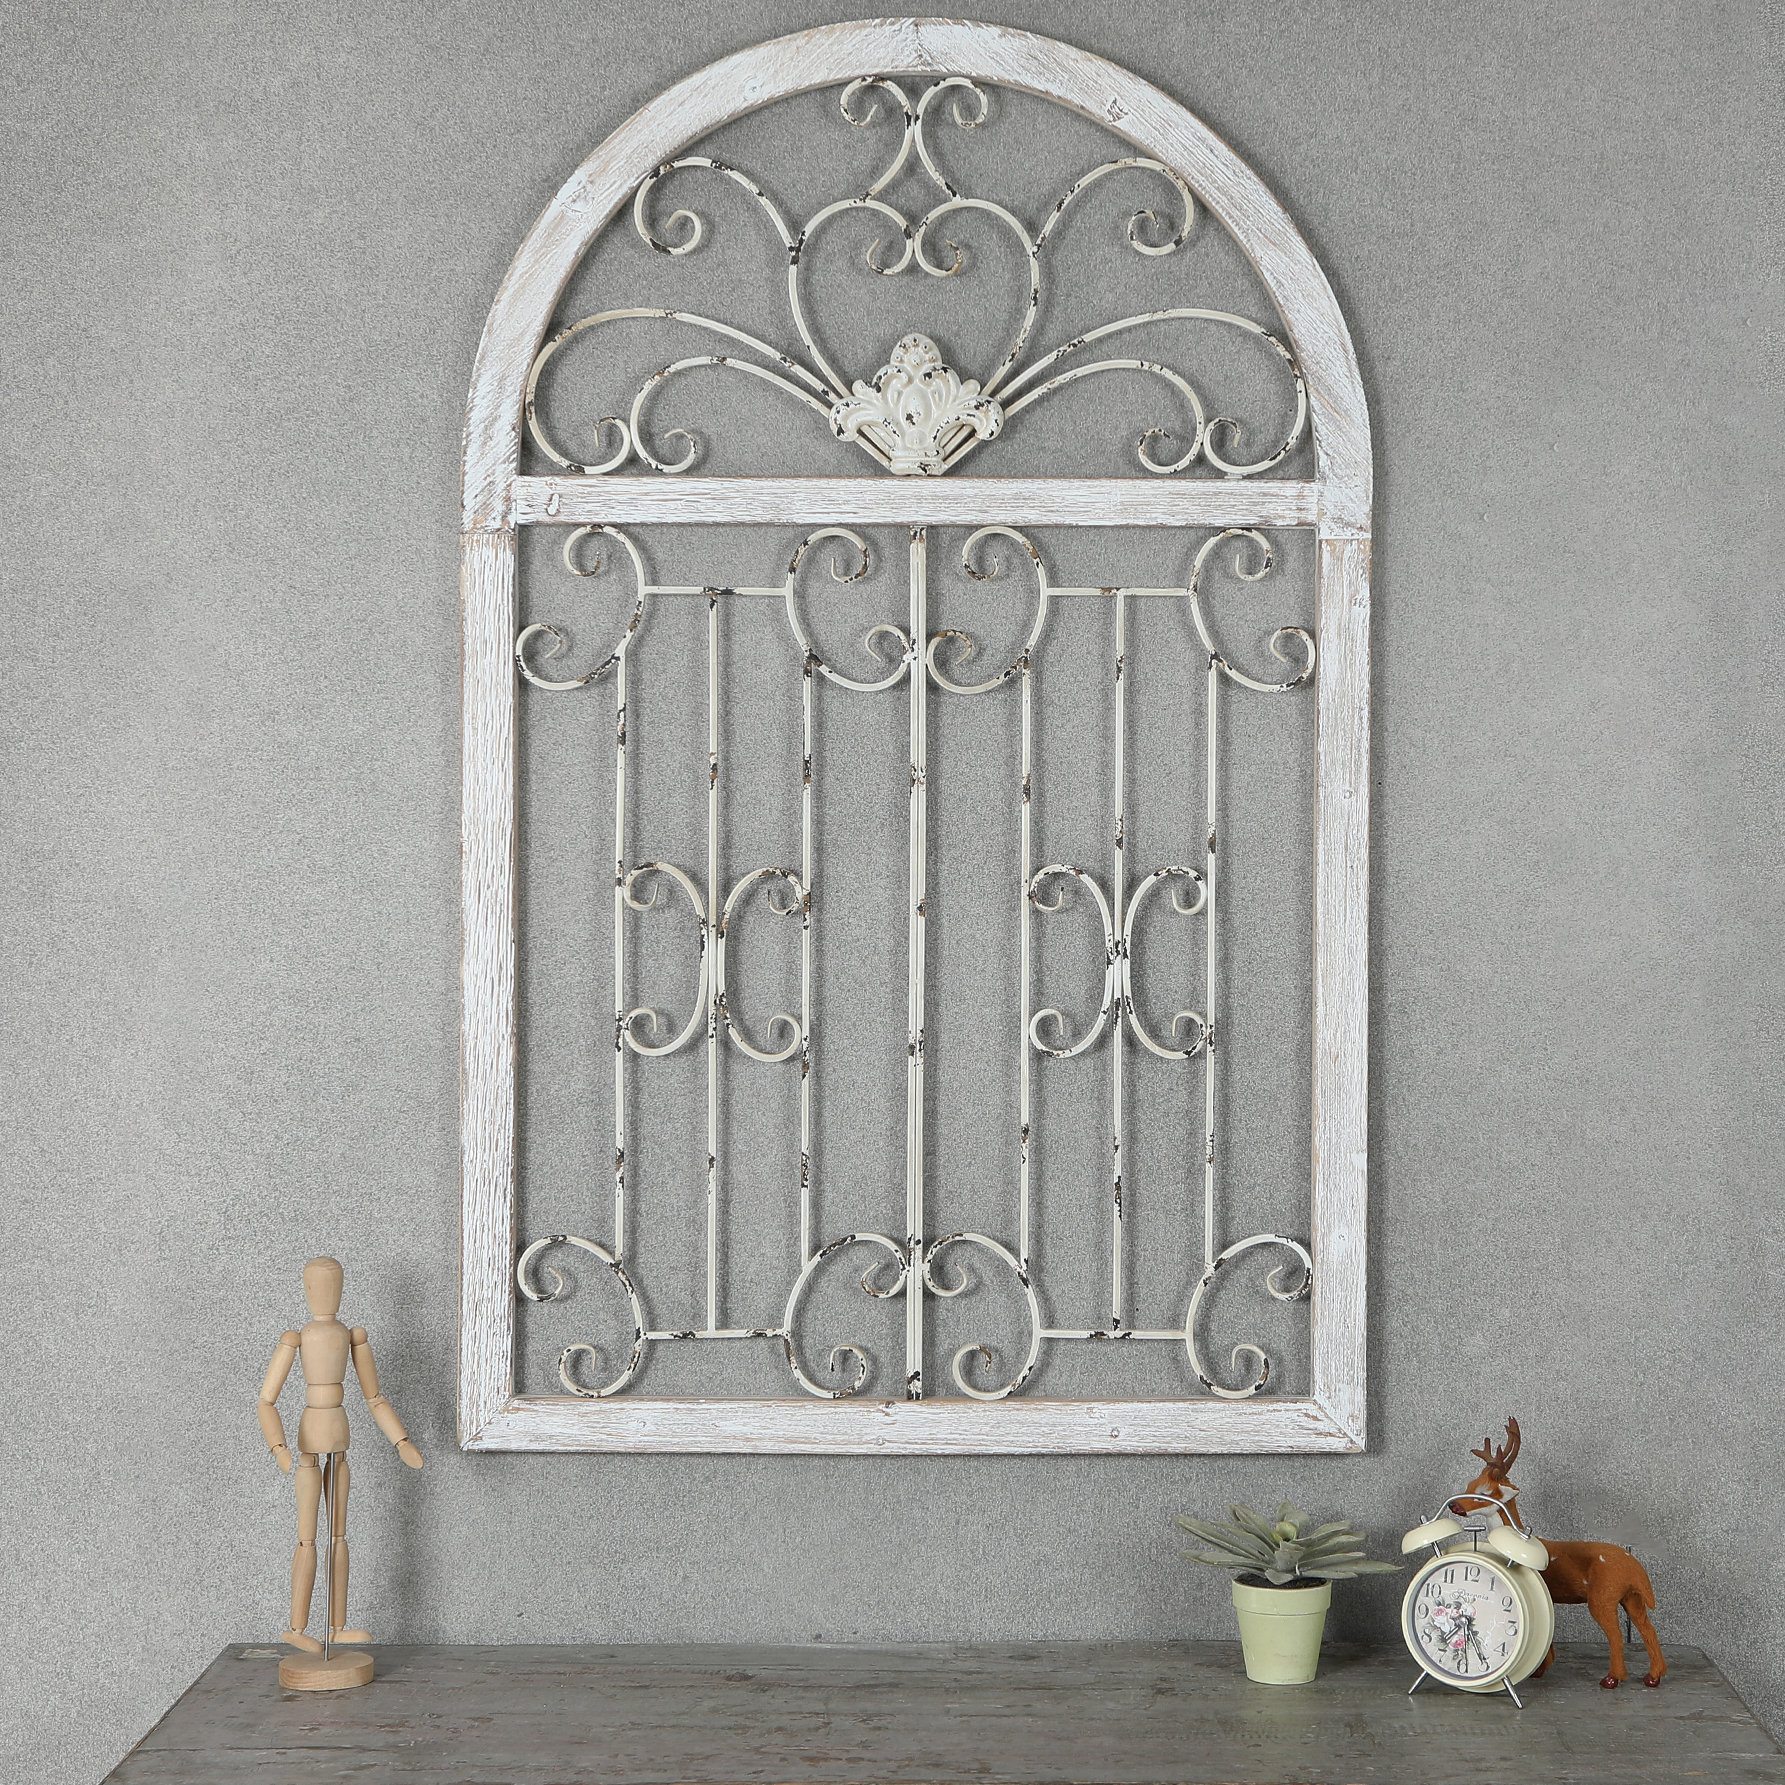 Scroll Wall Decor | Wayfair throughout Ornamental Wood and Metal Scroll Wall Decor (Image 22 of 30)